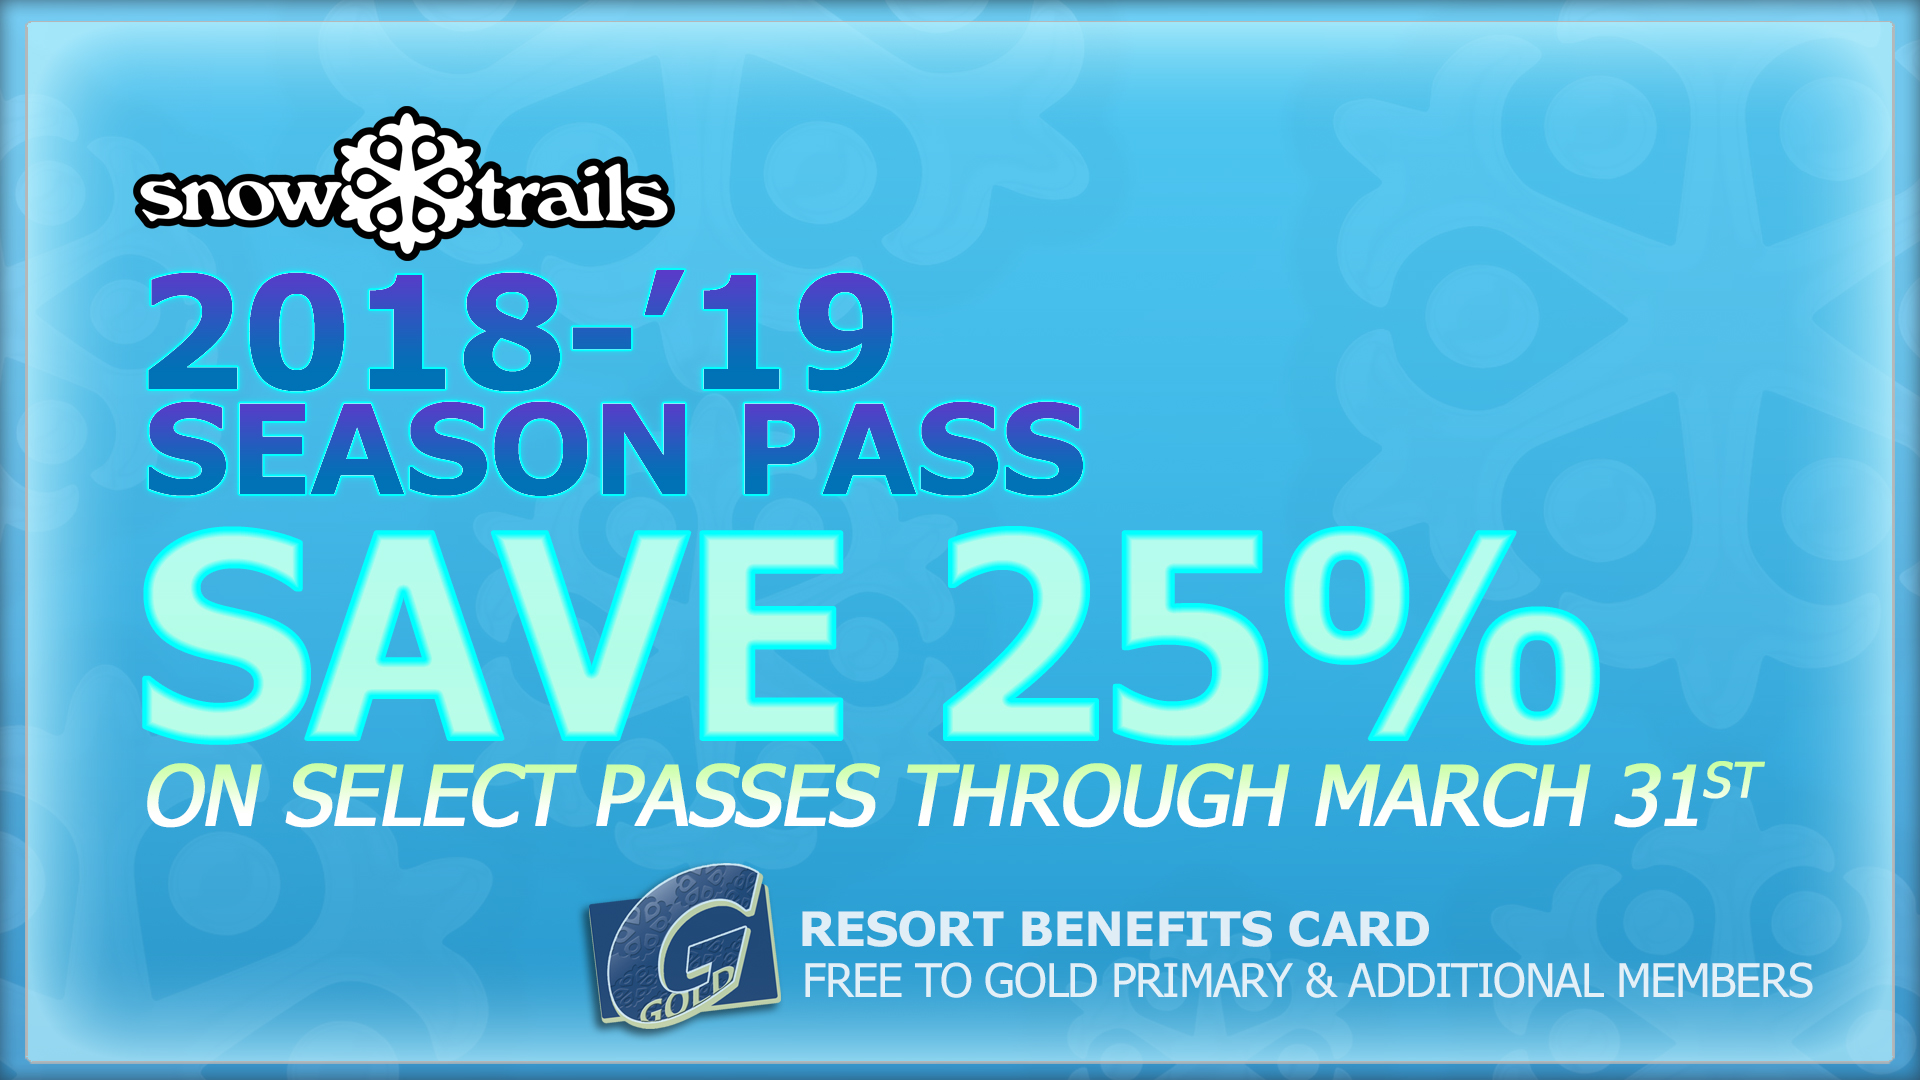 Season Passes: Save 25% Thru March 31st